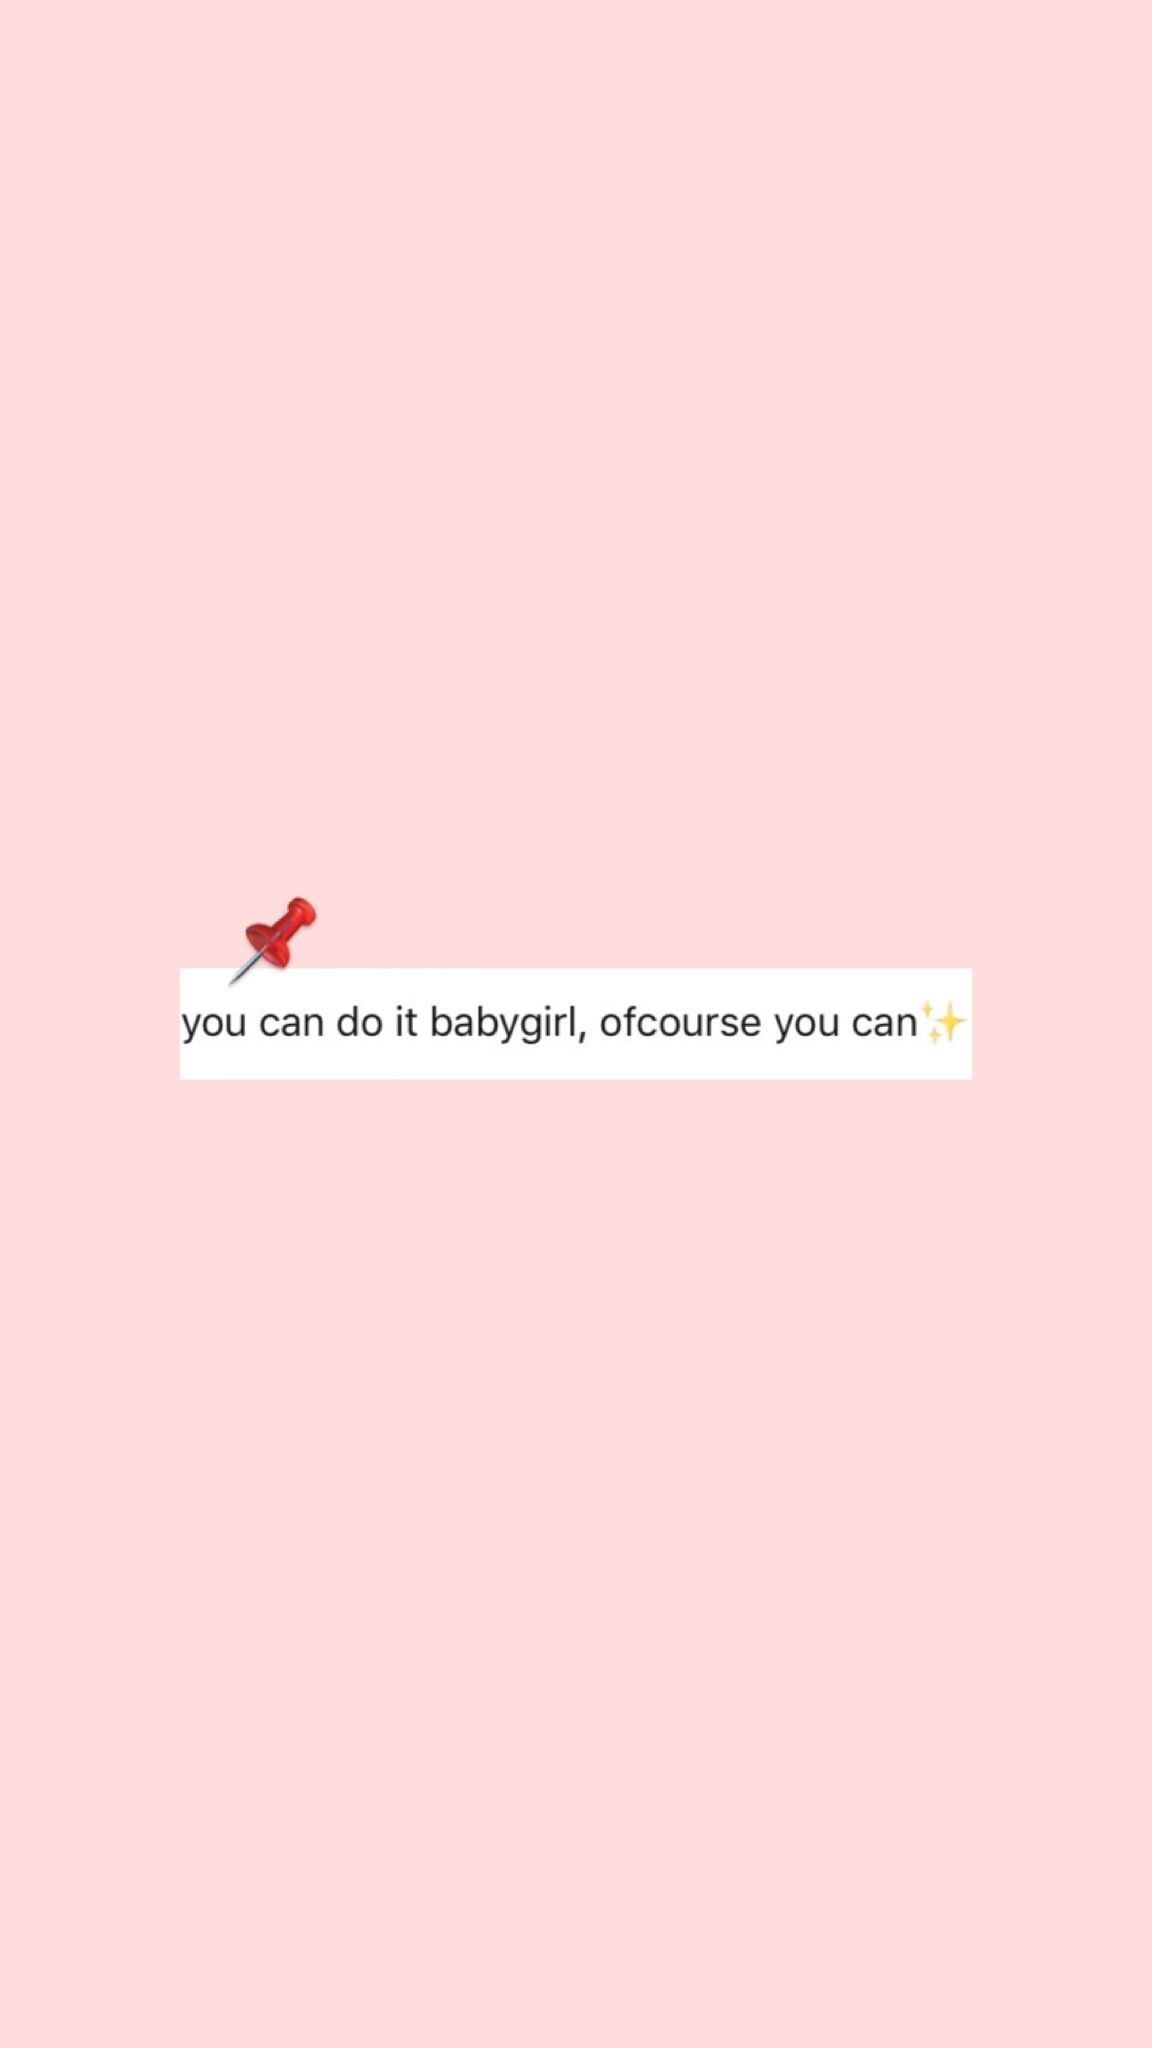 1152x2048 You Can Do It Babygirl Of Course You Can Quoting Pinterest Wallpaper Quotes Inspirational Quotes Life Quotes